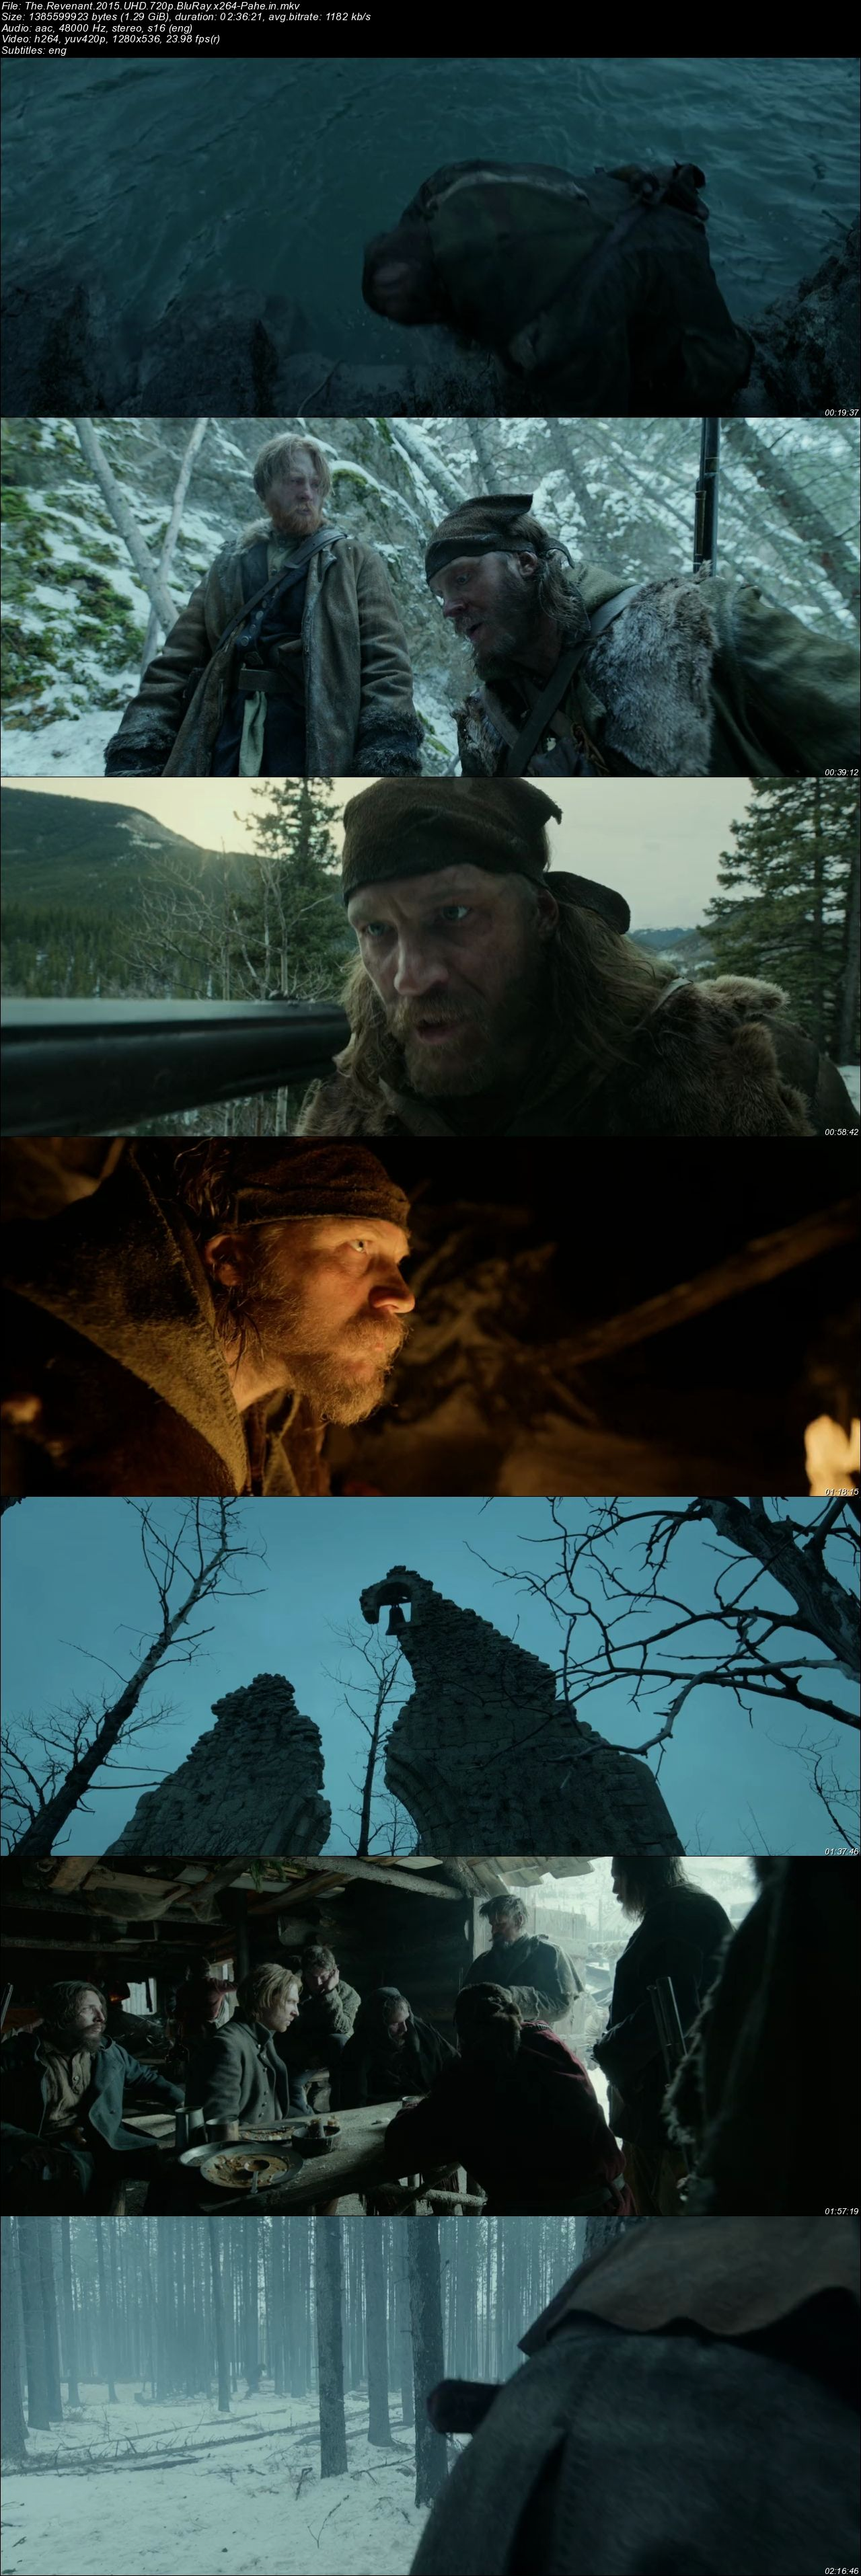 Index of The Revenant | Hollywood Movies in 2019 | The revenant